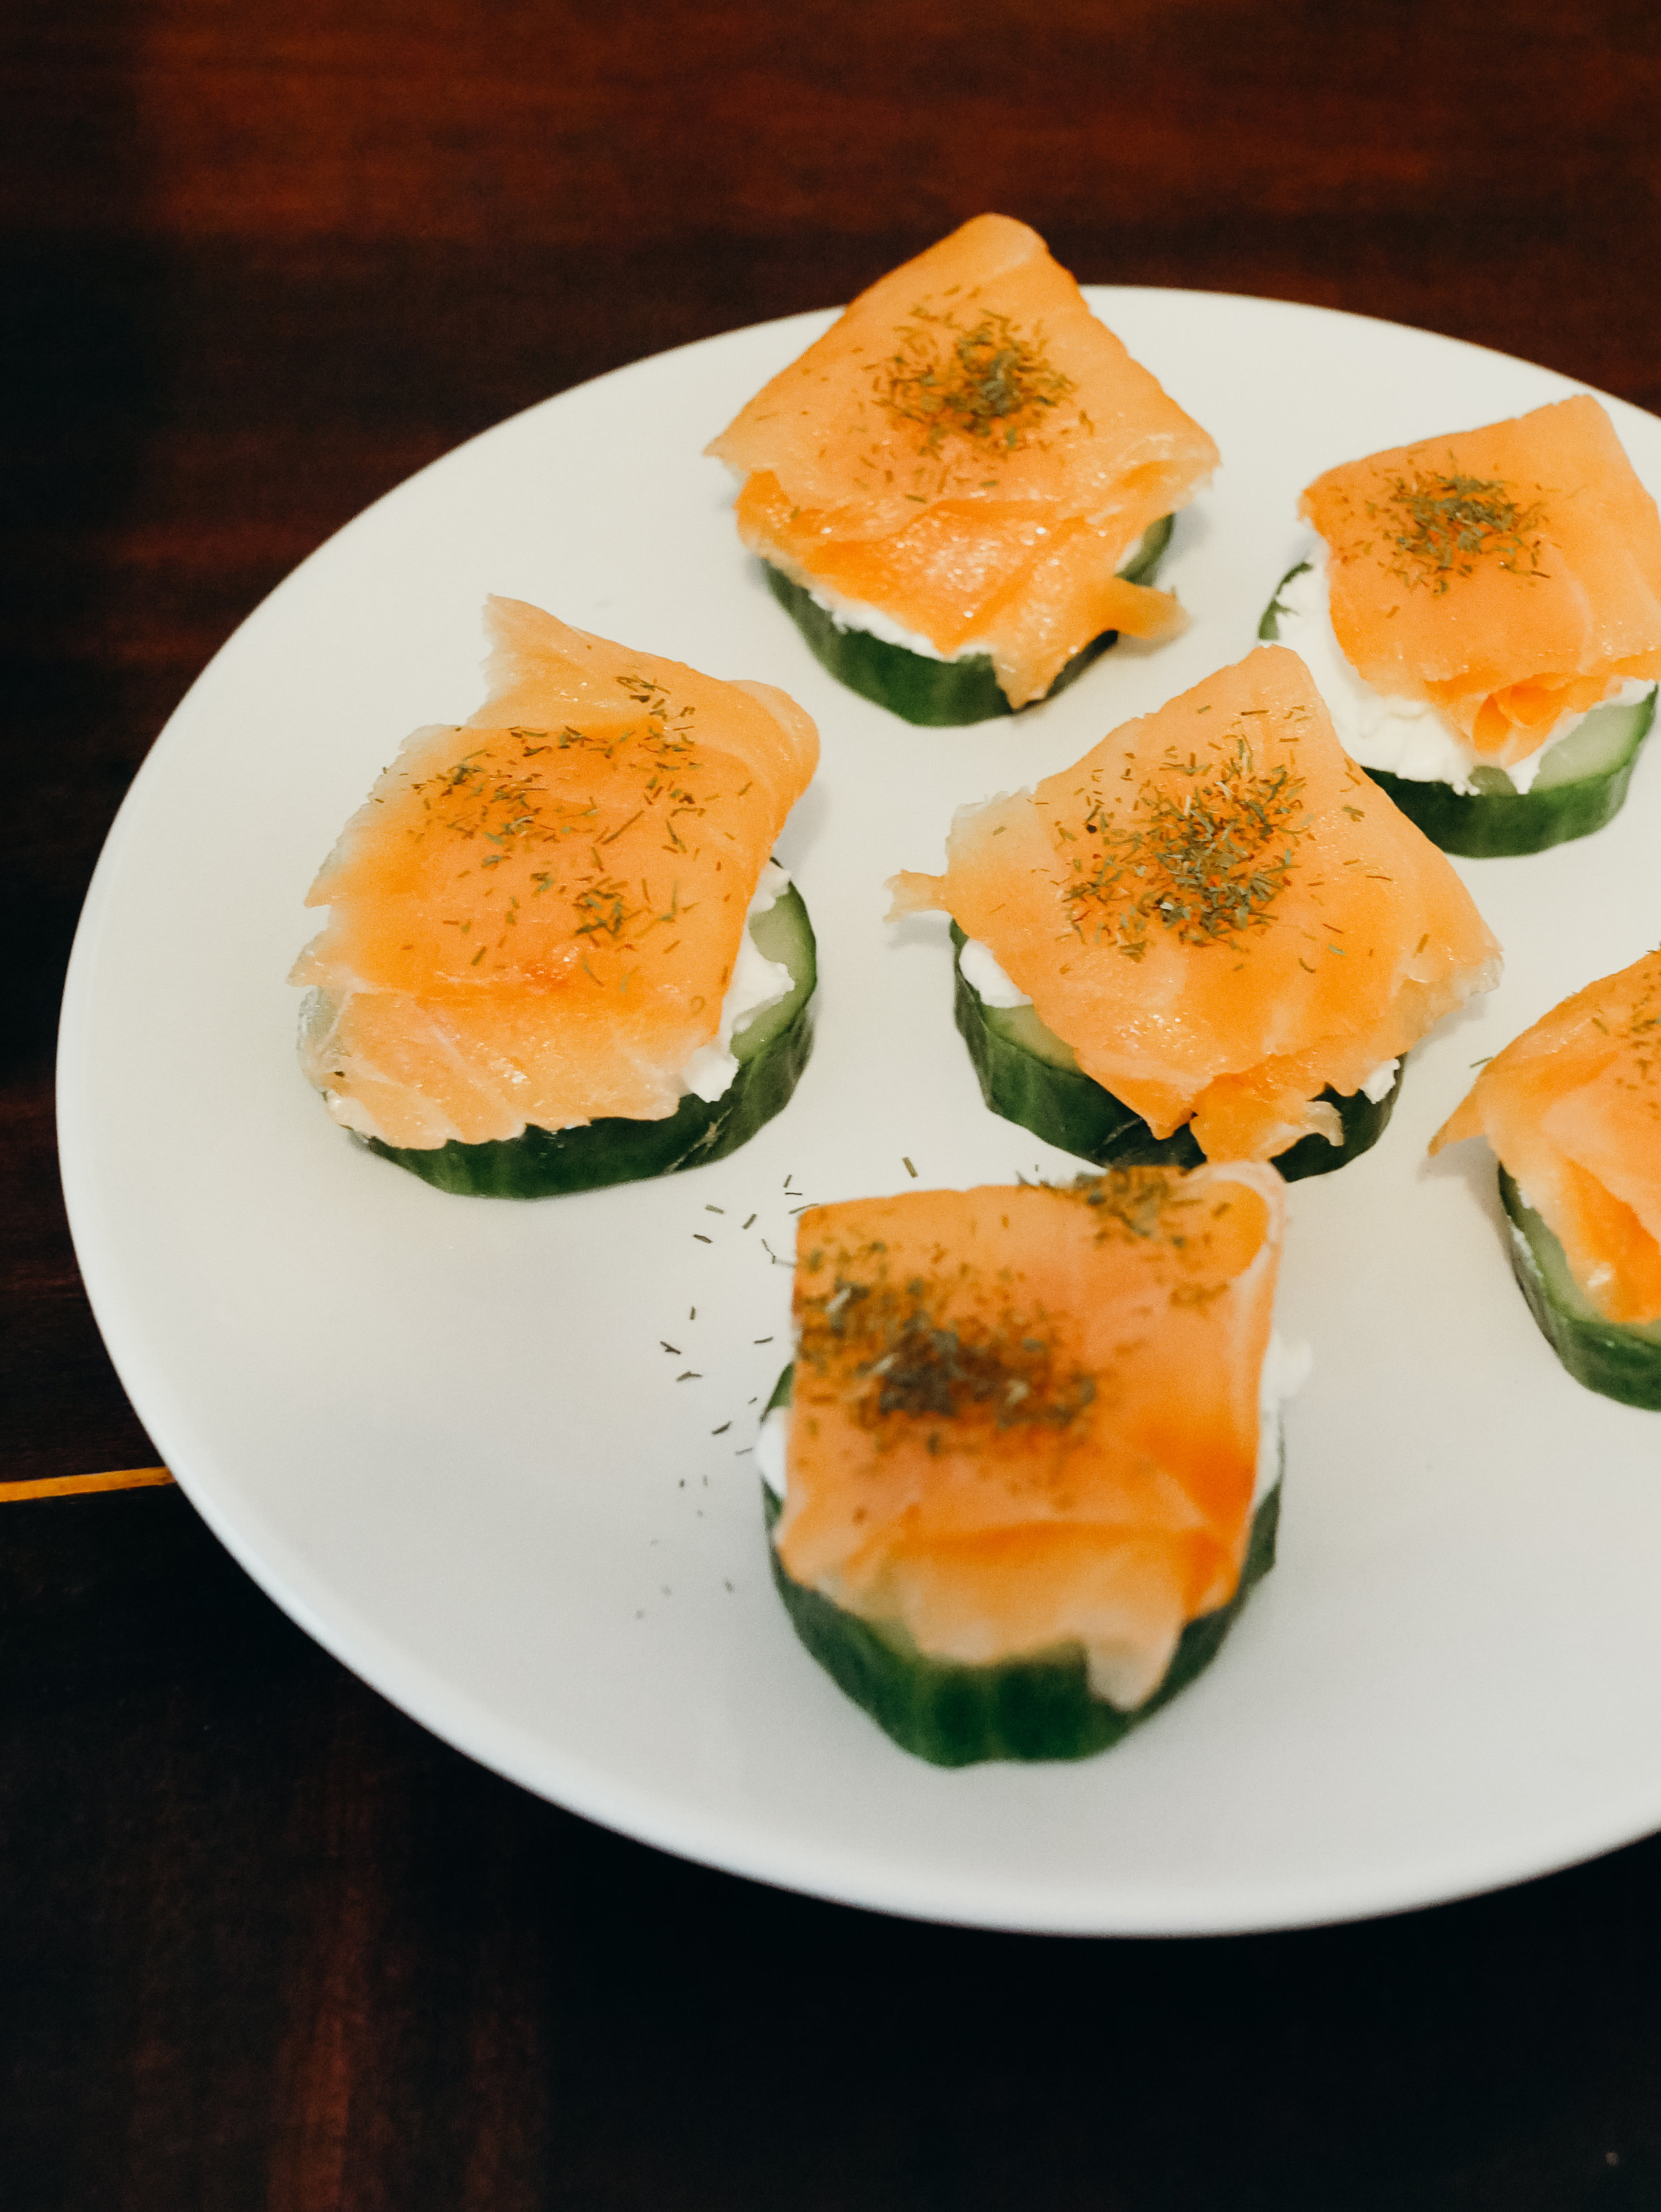 CUCUMBER SALMON ROUNDS - We didn't really follow a recipe for these either. We just sliced some cucumber, added a dollop of cream cheese (you could use another soft cheese with herbs or something), a sliver of smoked salmon, and dill.